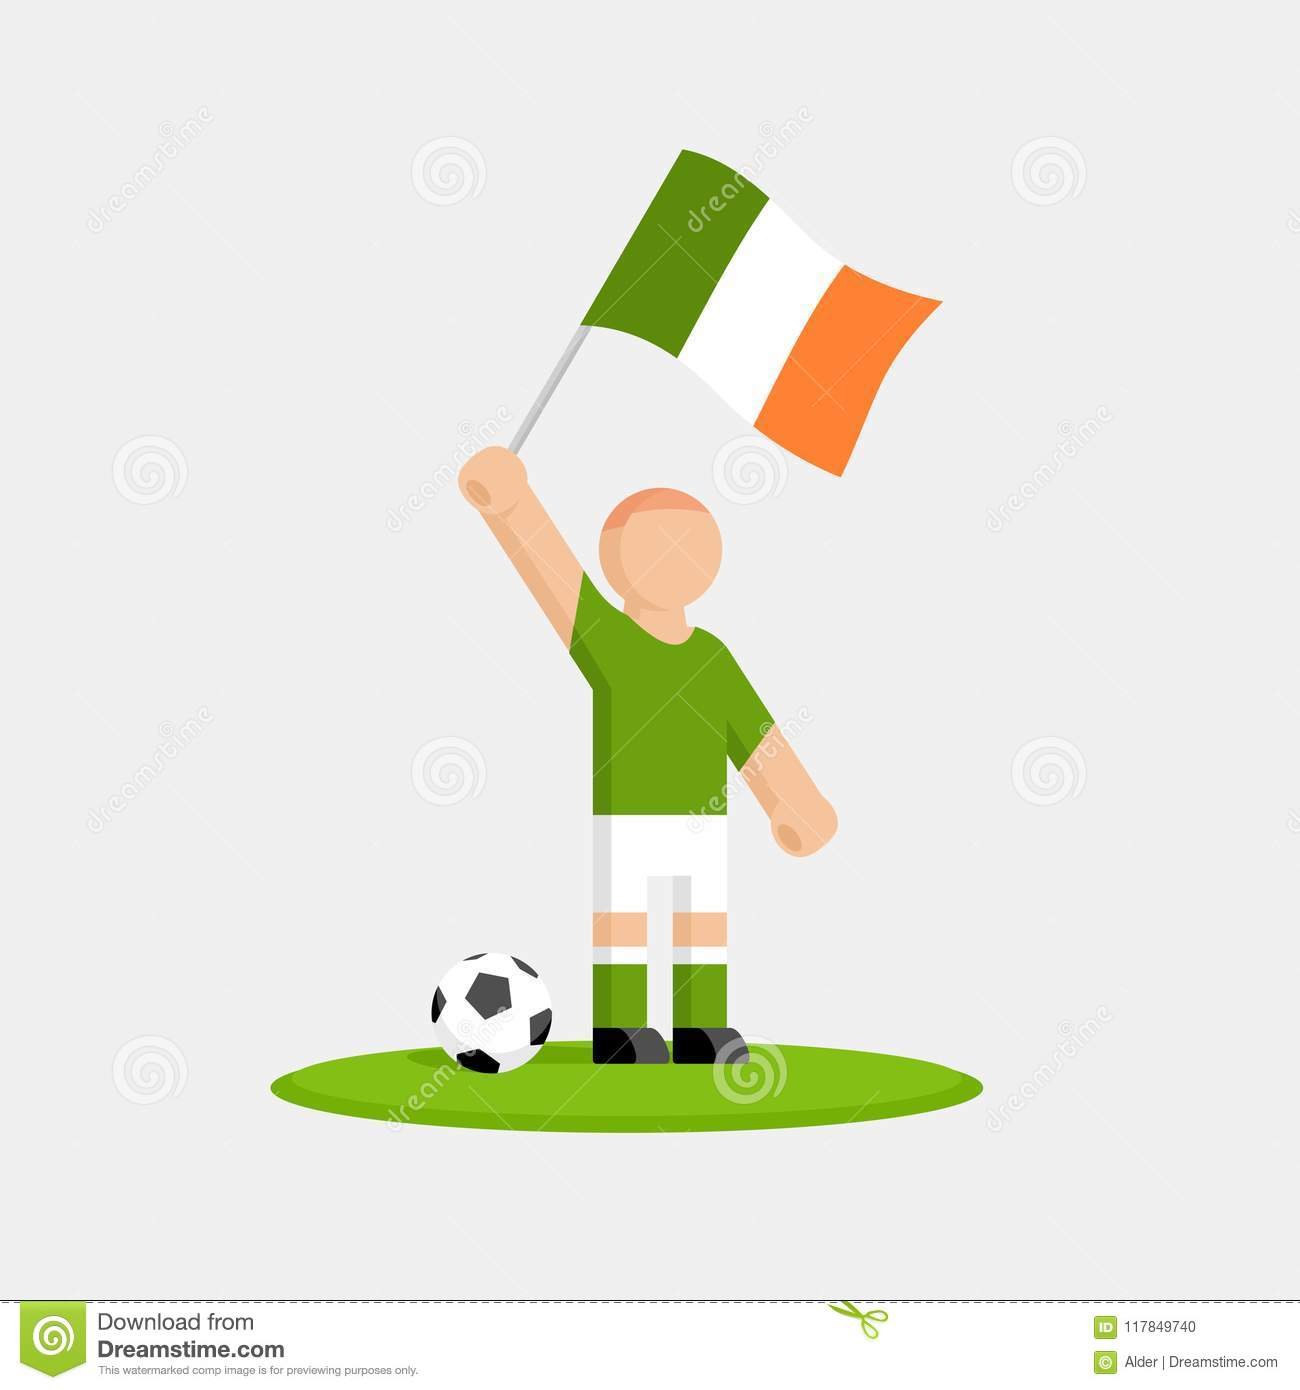 d2035fc38 Ireland Soccer Player In Kit With Flag And Ball Stock Vector ...